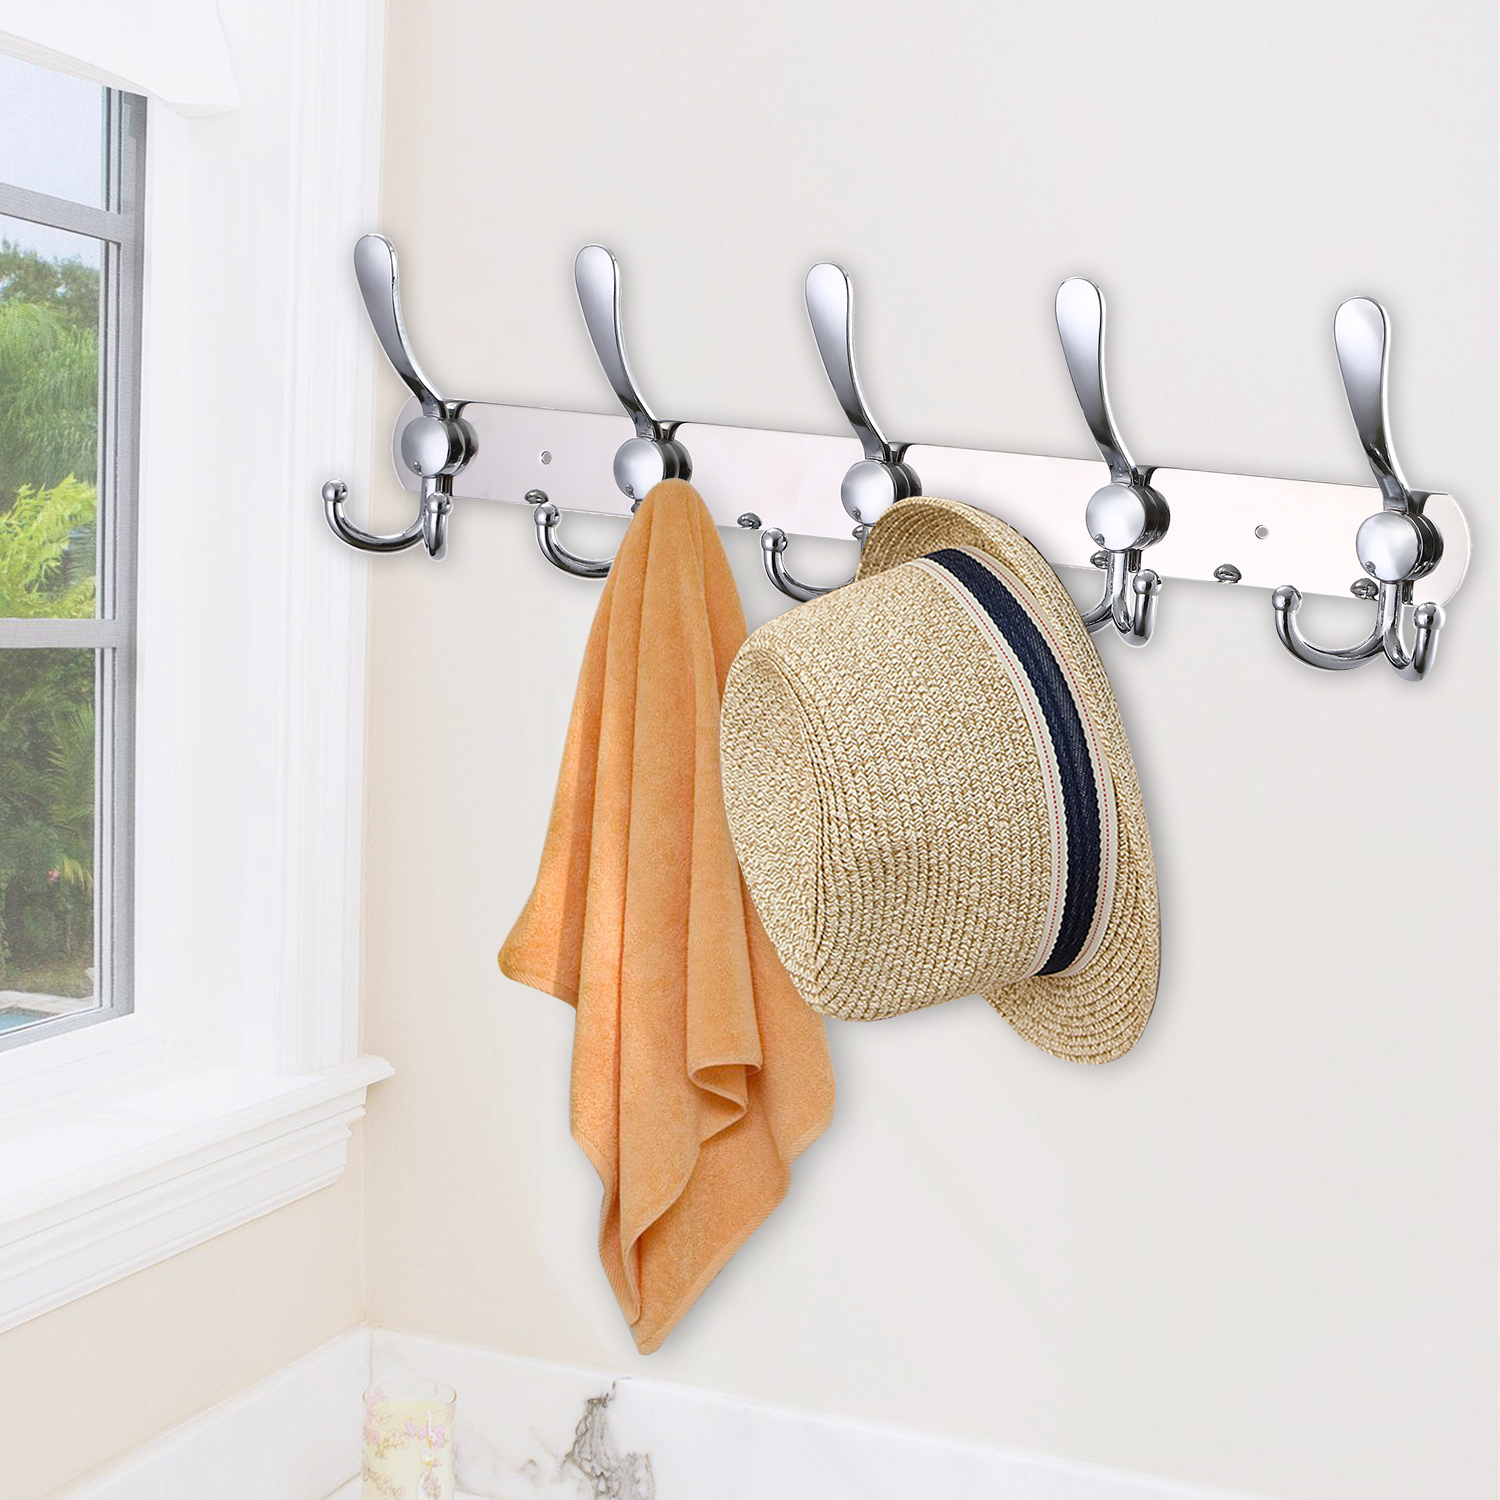 Wall Mounted Coat Rack Hook Hat Clothes Hanging Hanger